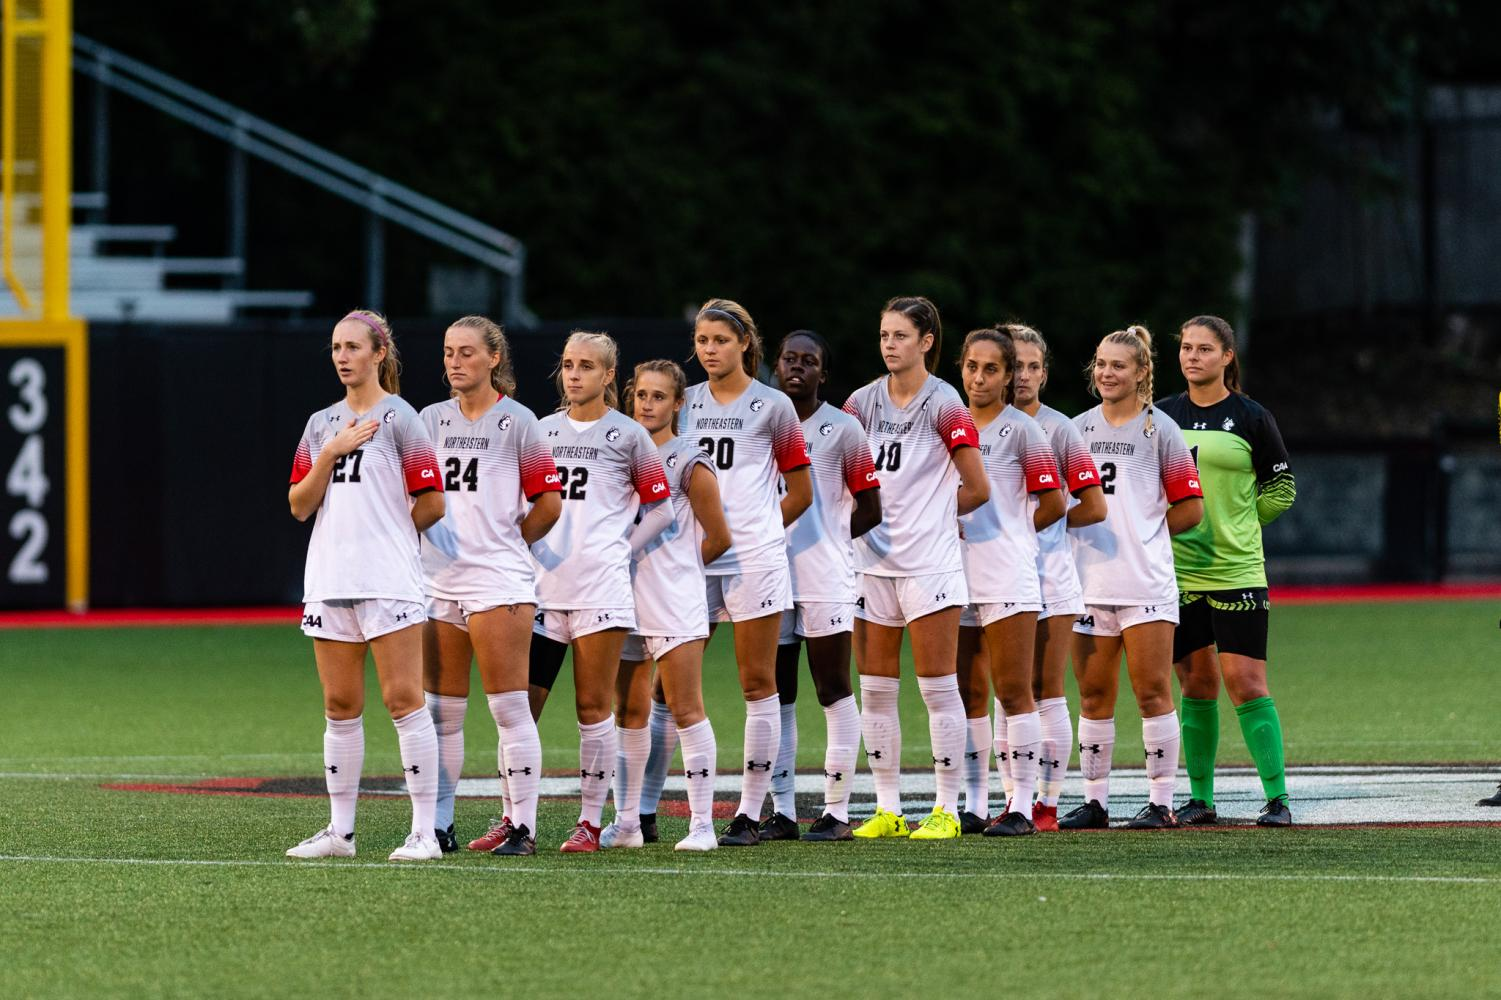 The women's soccer team lines up on the field before a game against Hofstra.